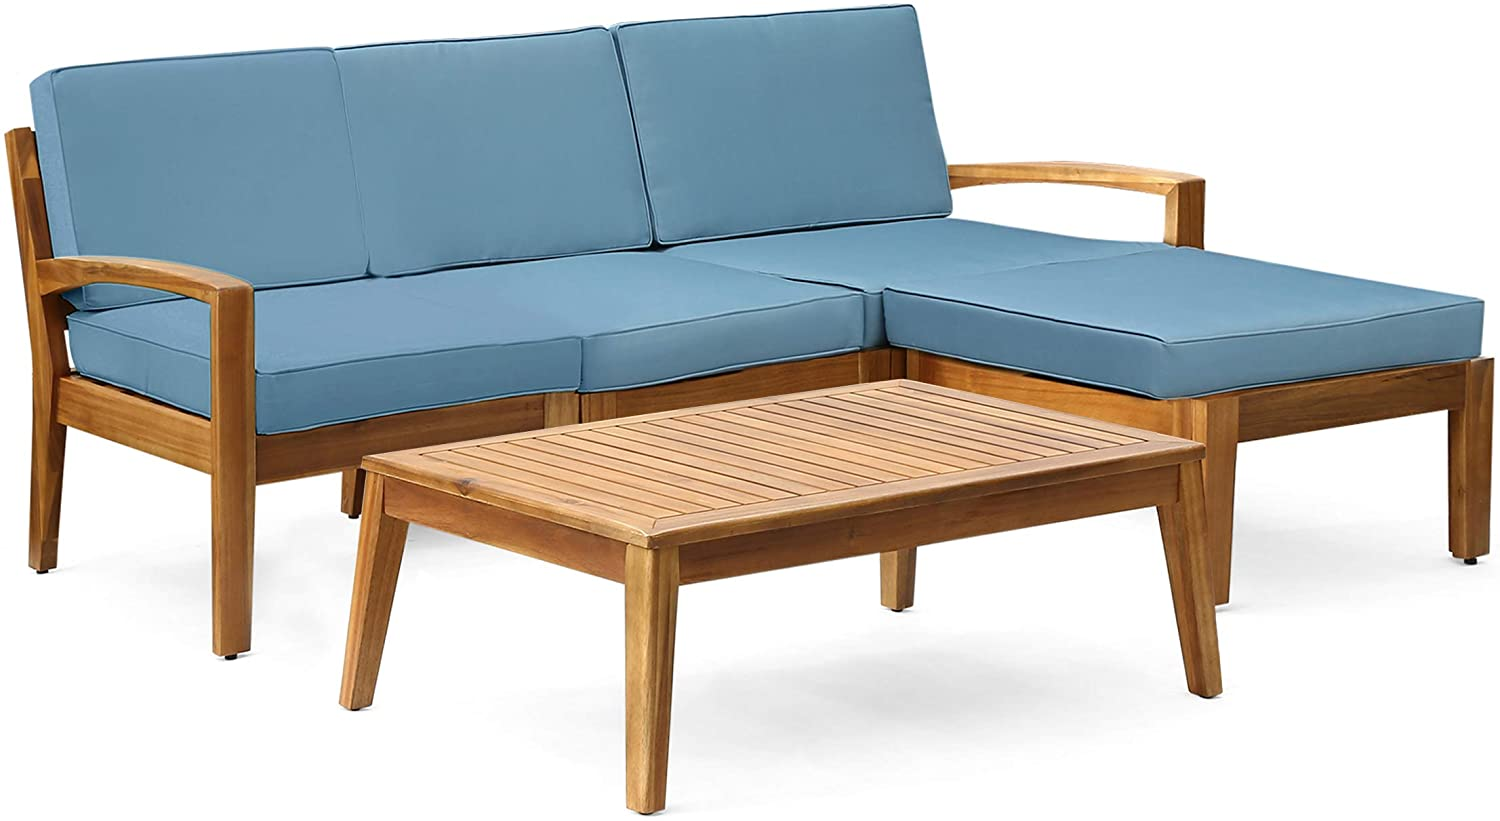 Grenada Sectional Sofa Set   5-Piece 3-Seater   Includes Coffee Table and Ottoman   Acacia Wood Frame   Water-Resistant Cushions   Teak and Blue